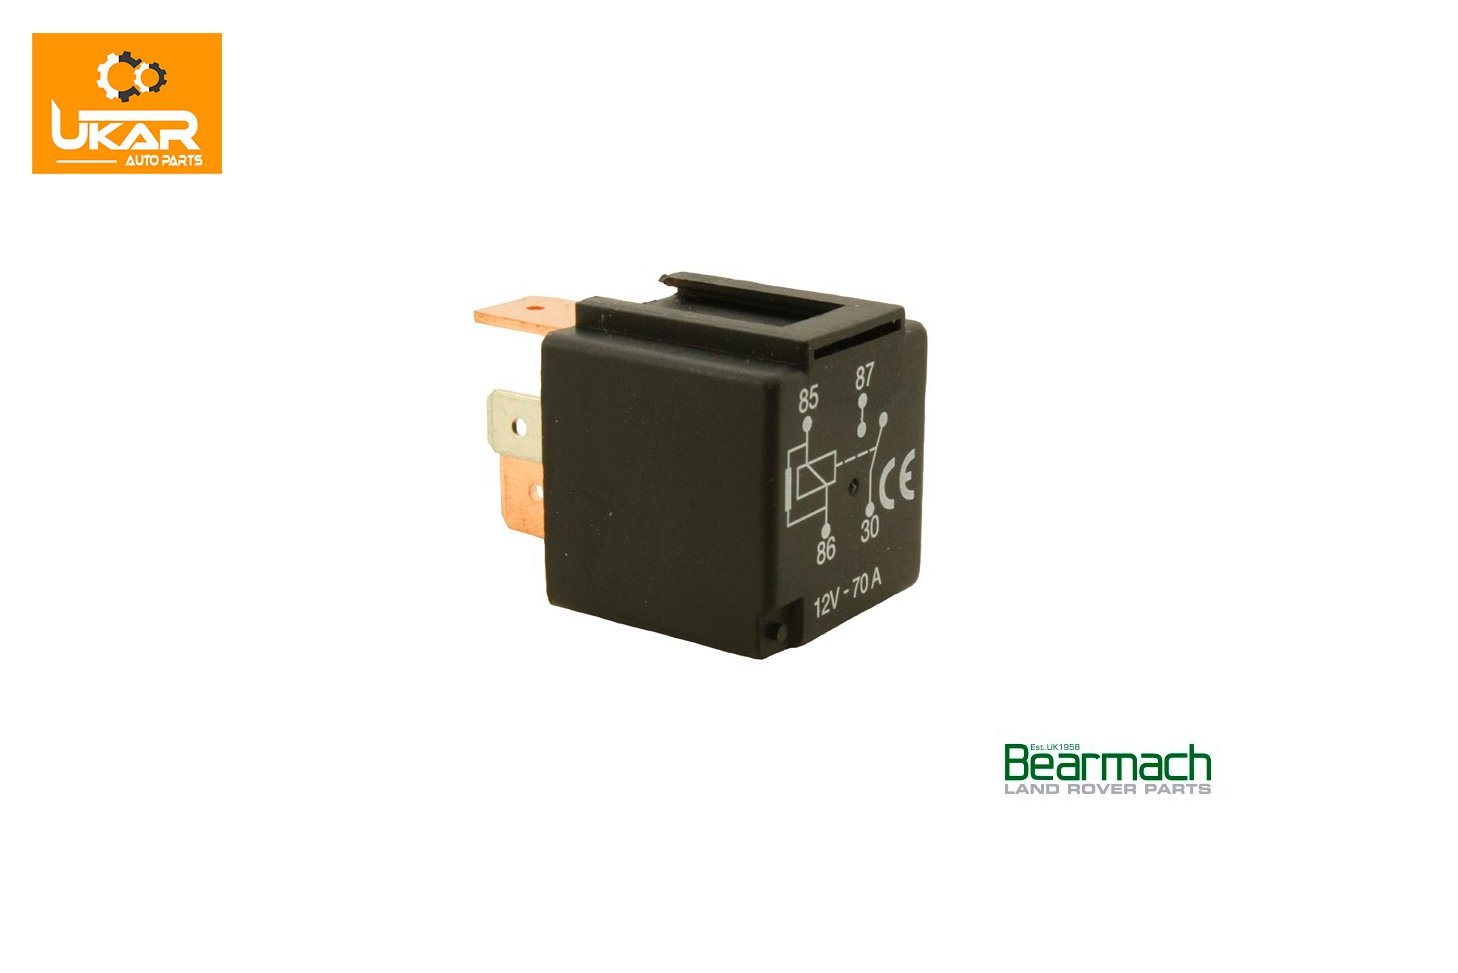 Land Rover Discovery 3 L319 Relay, Black 70 Amp Various Use Part# YWB500220 ALLMAKES 4x4 UK